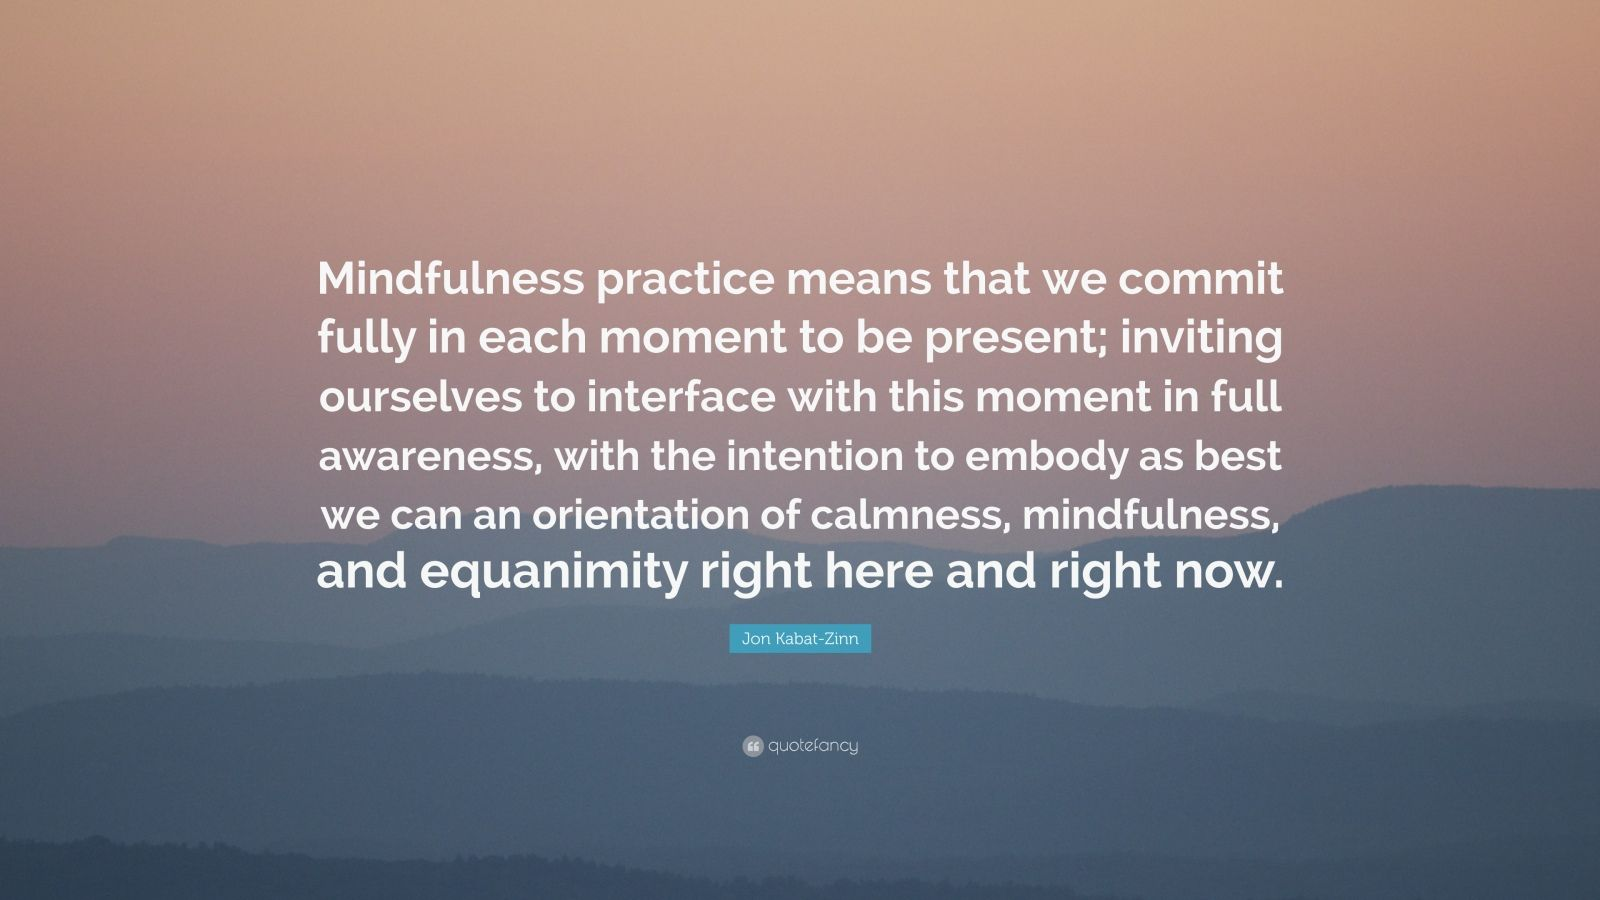 Quotes About Mindfulness Jon Kabatzinn Quotes 94 Wallpapers  Quotefancy